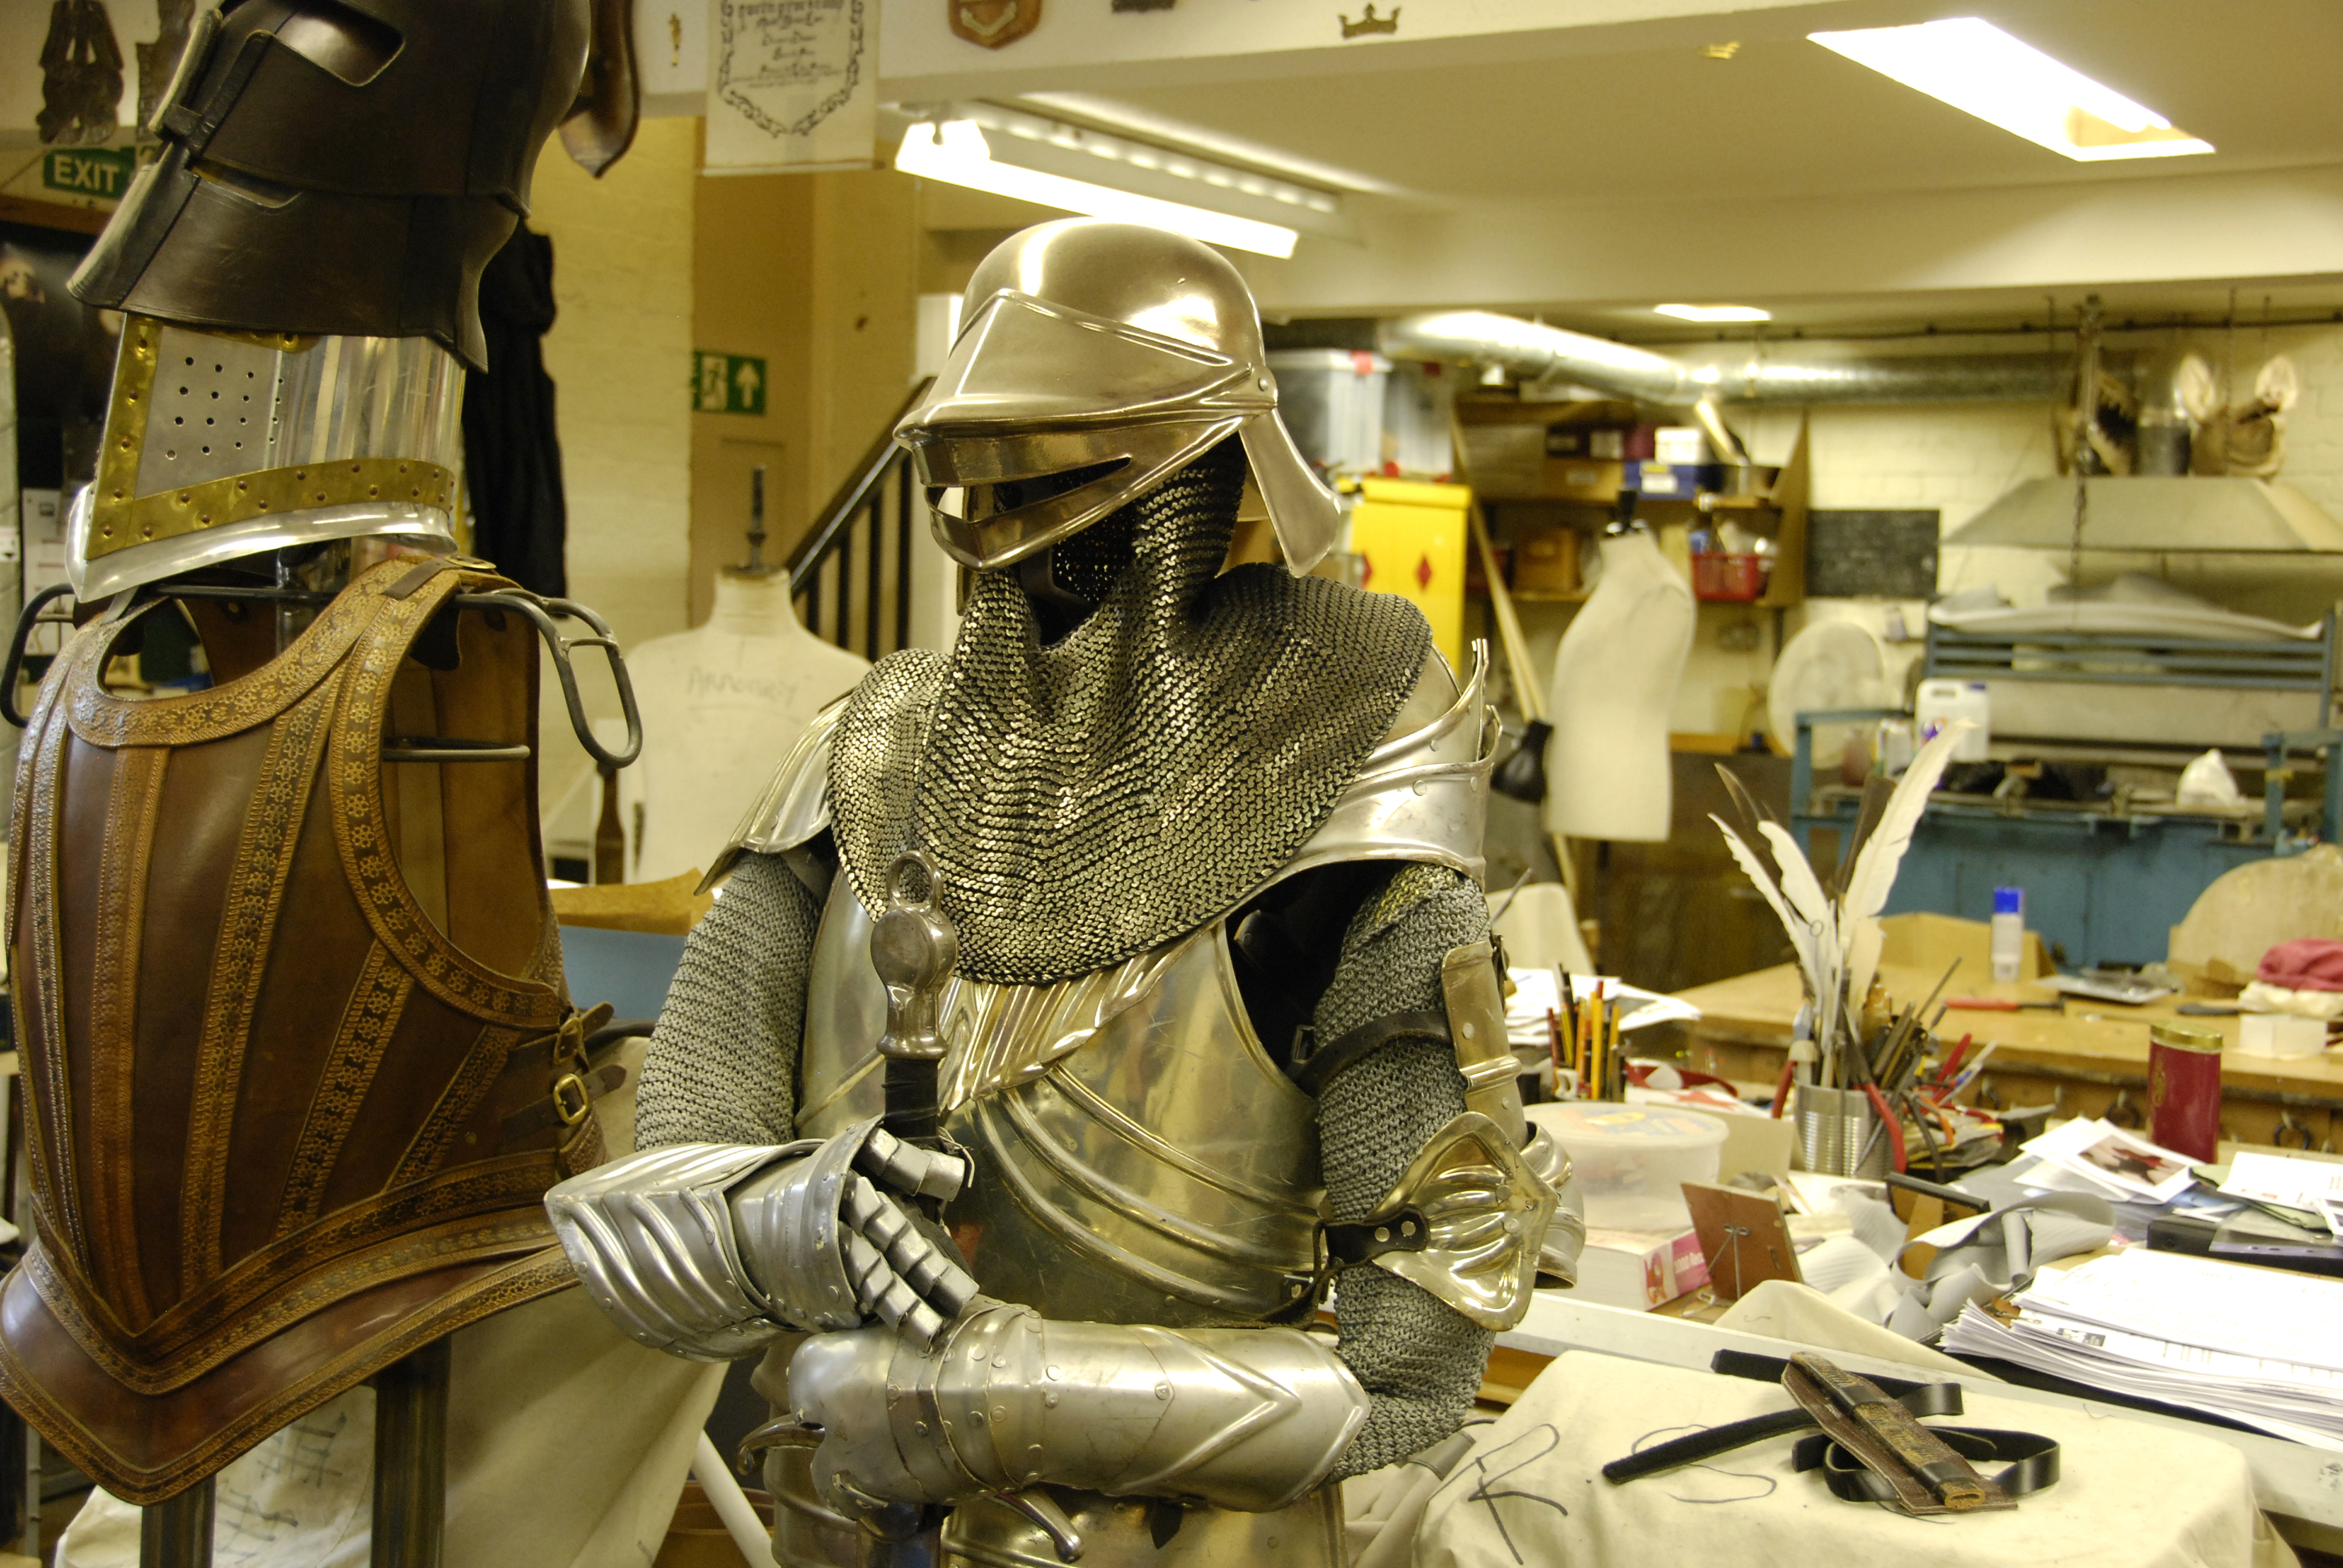 A silver armour costume on display at the RSC costume store